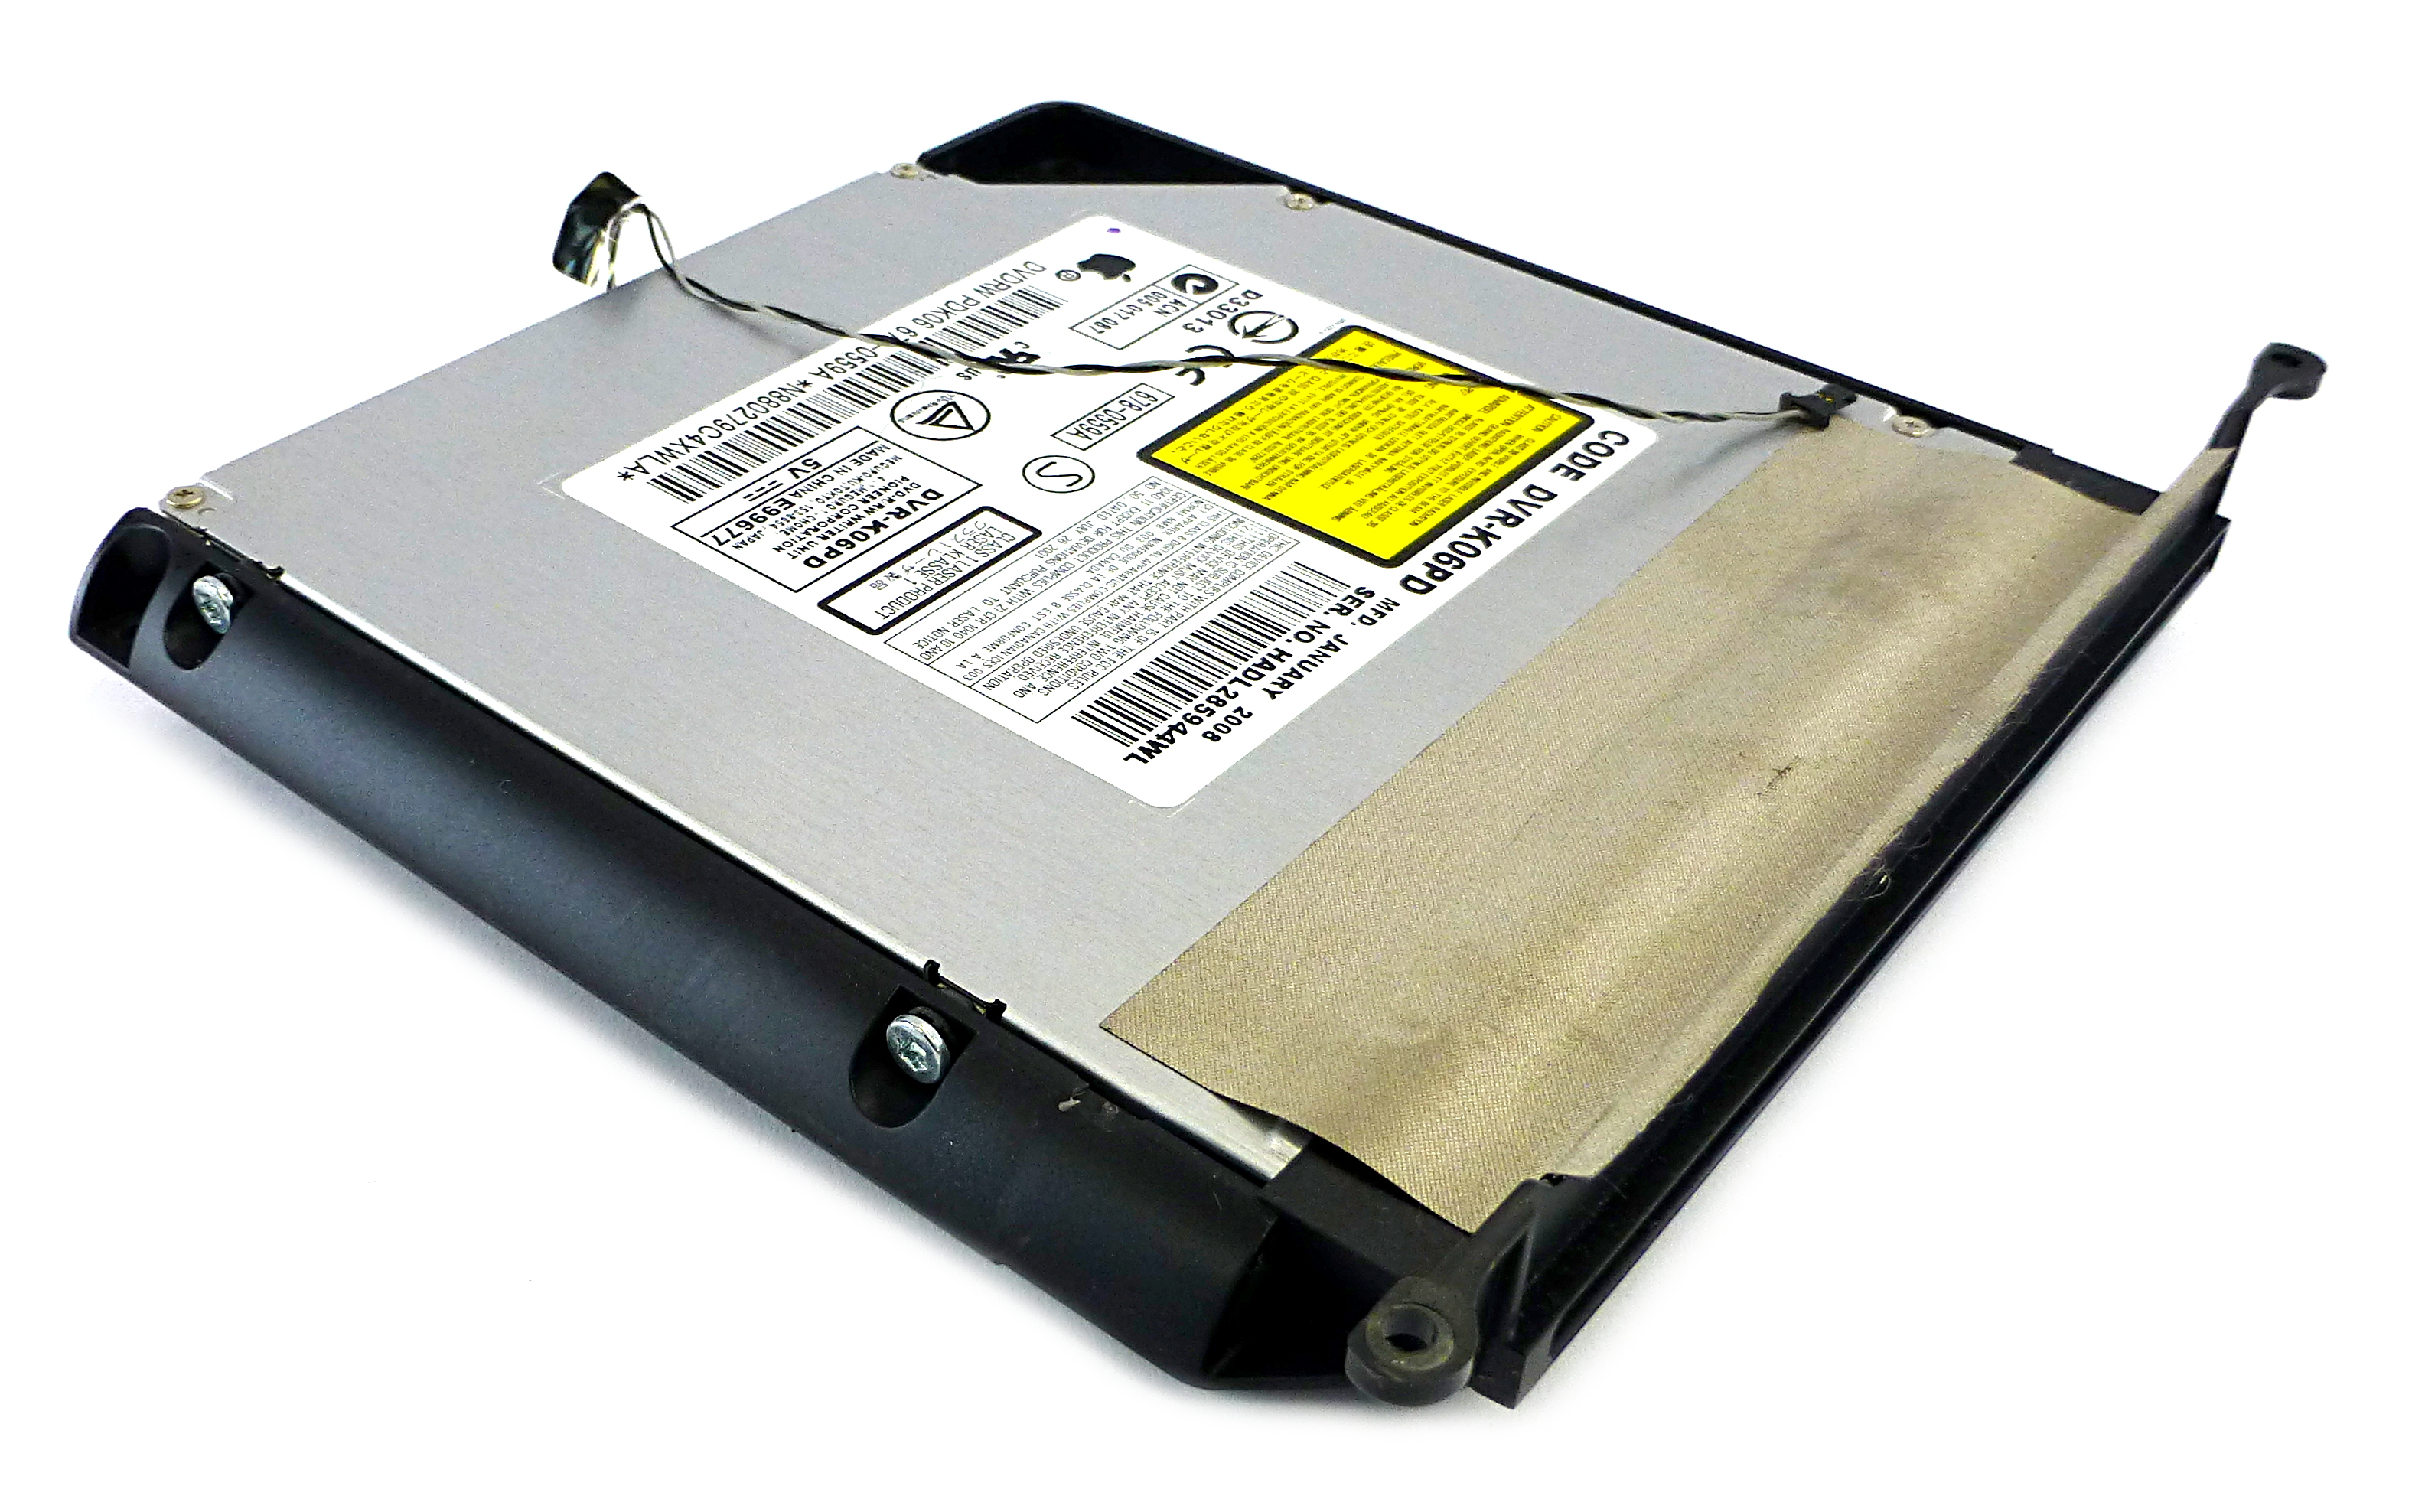 678-0559A Apple DVD-R/RW Writer Optical Drive - Pioneer DVR-K06PD